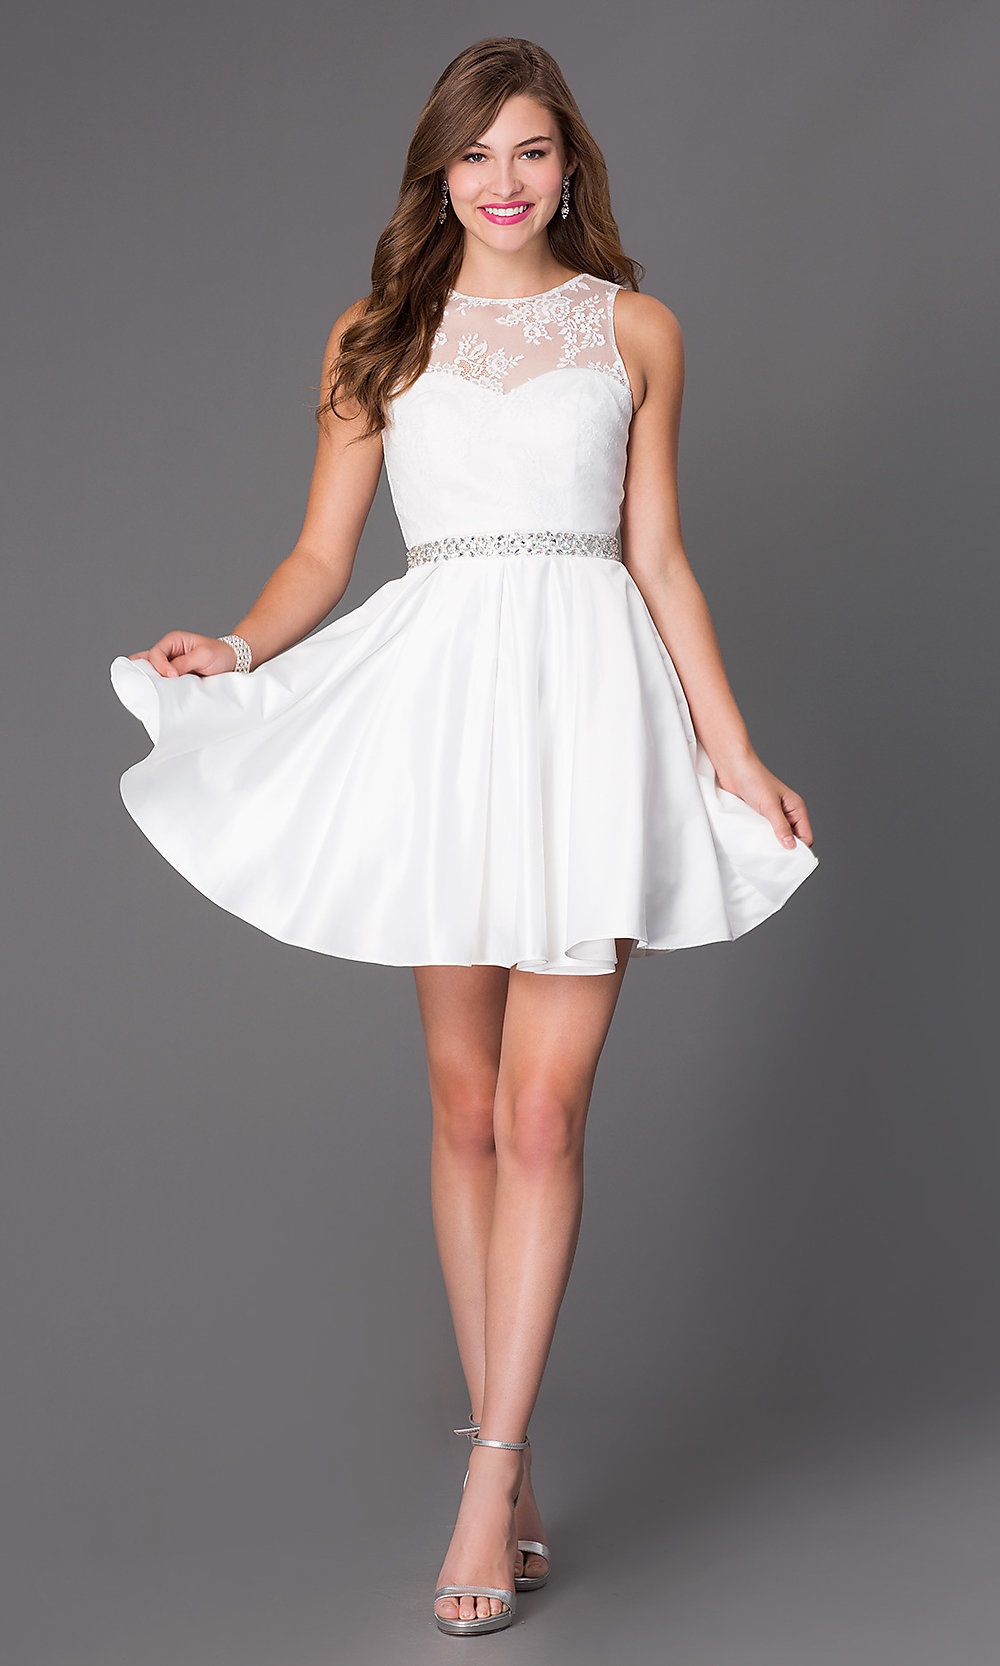 Sleeveless Fit-and-Flare Prom Dress - PromGirl